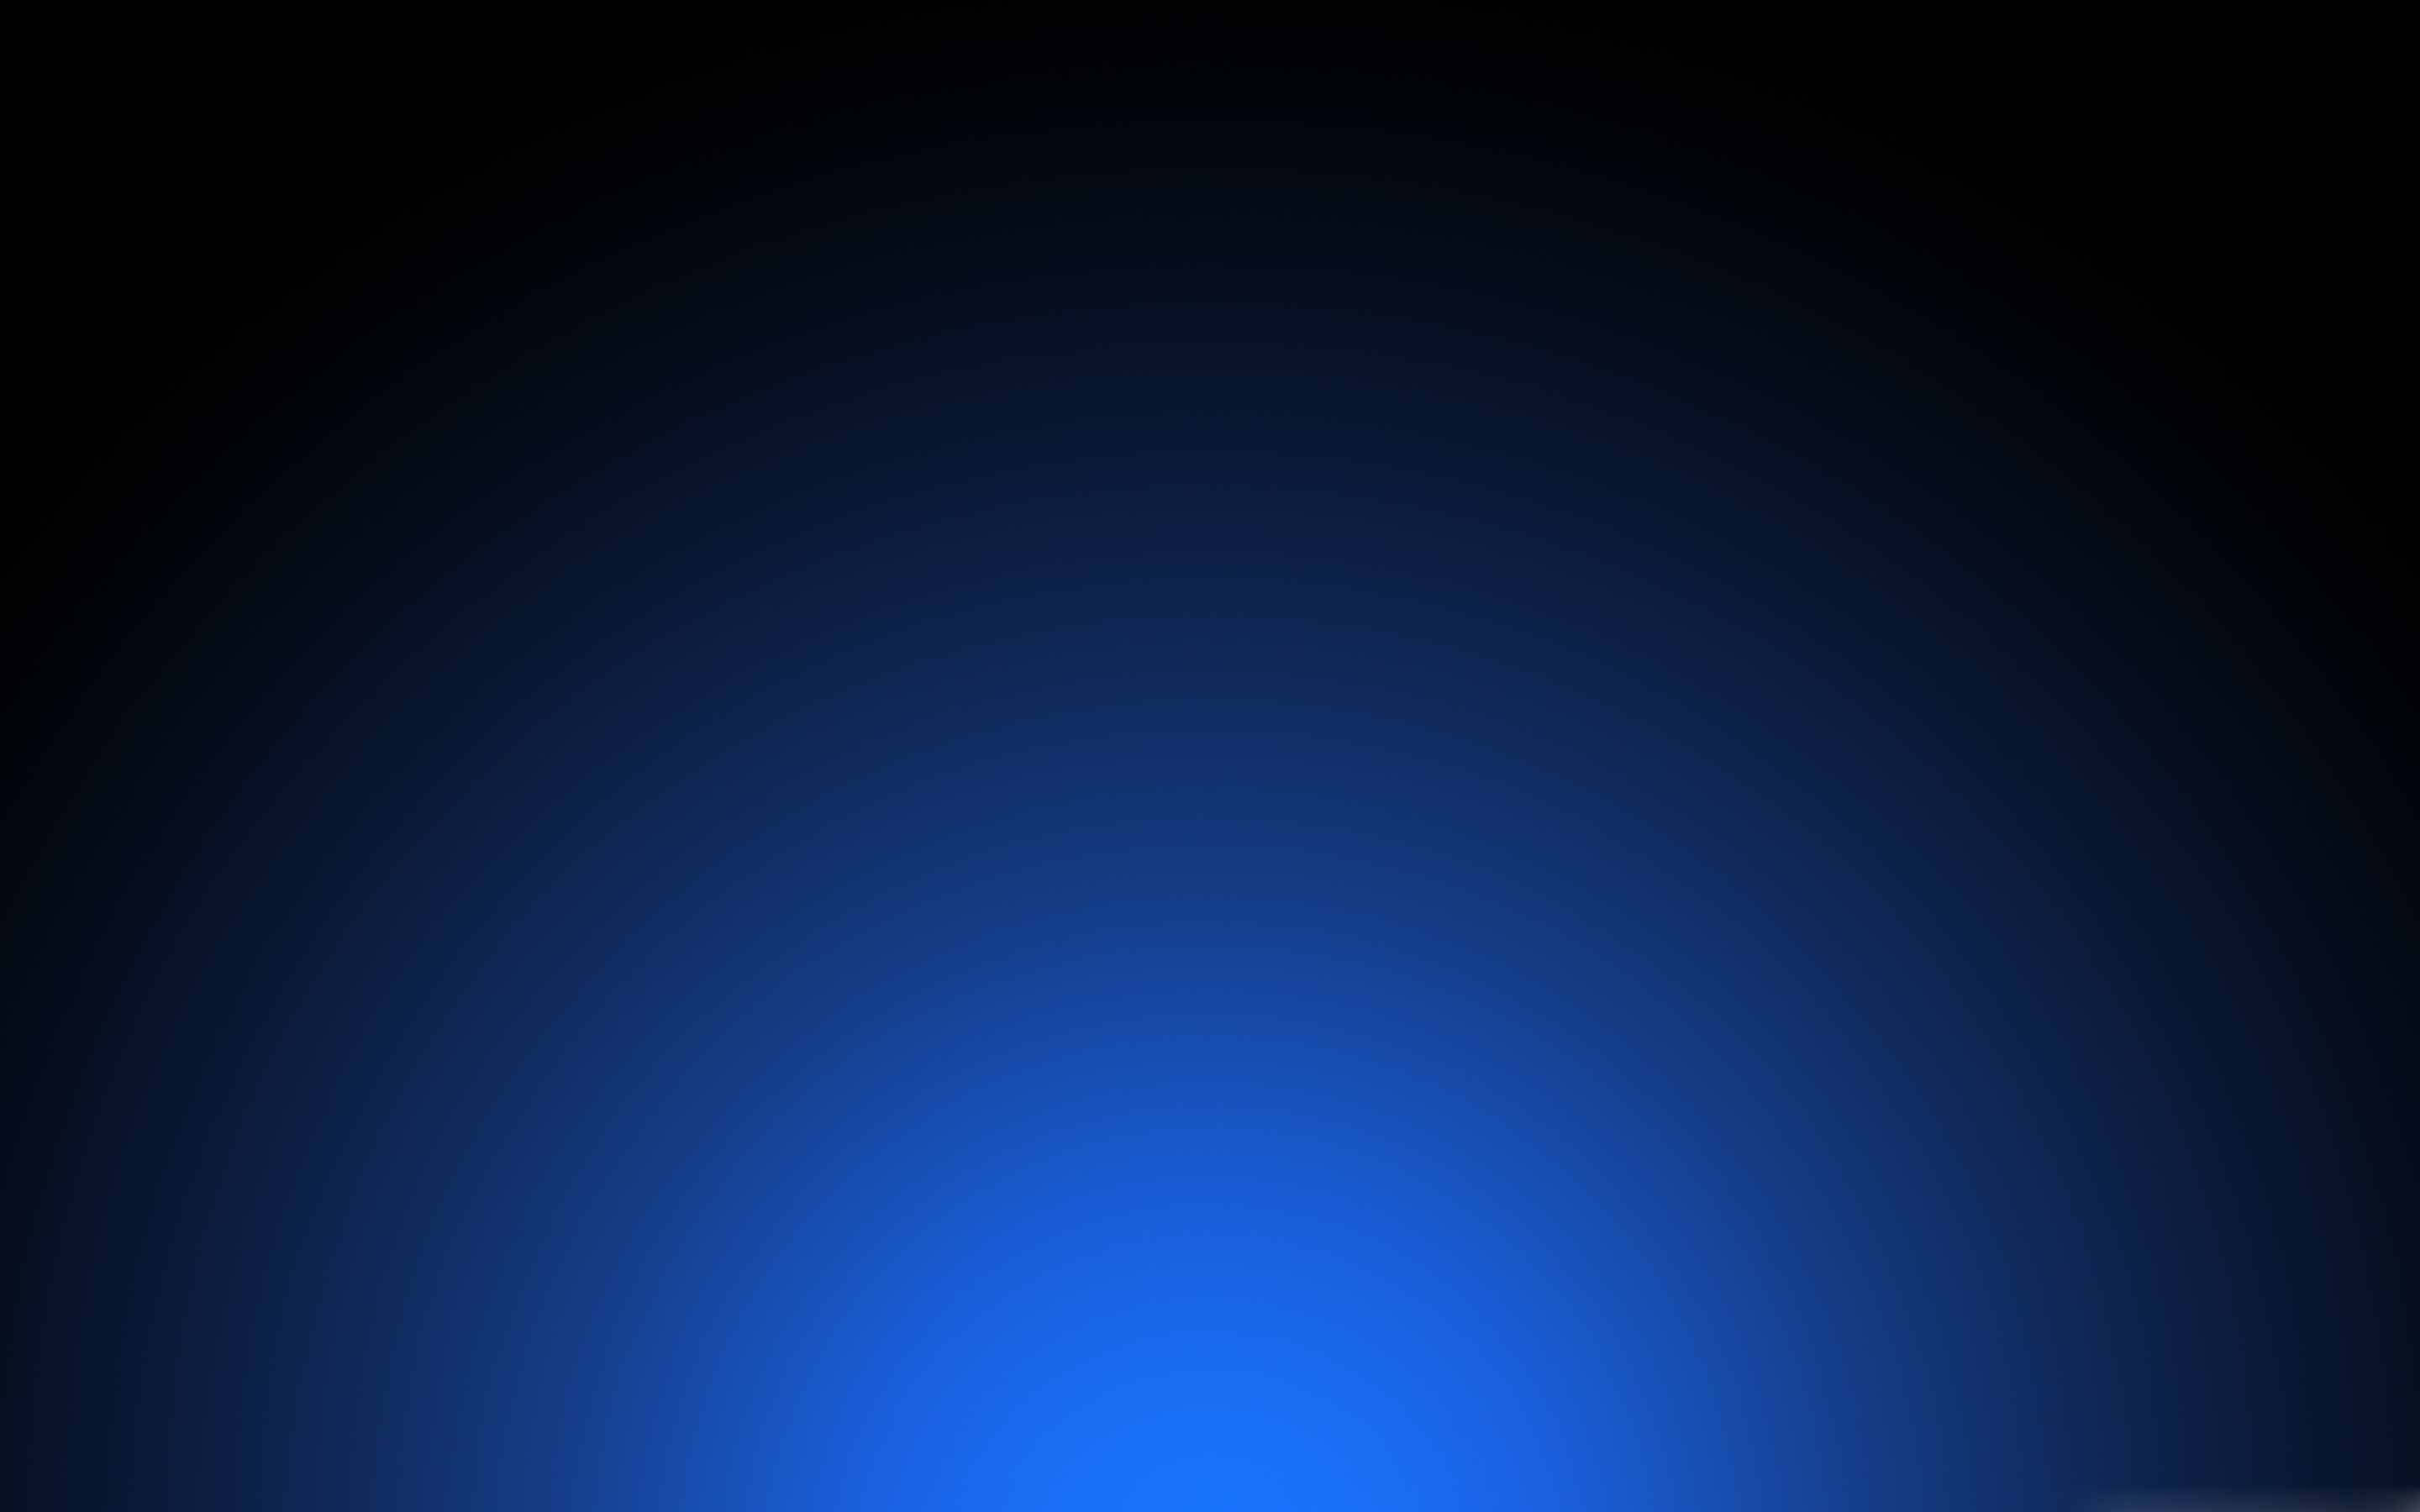 Simple Blue Black Mac Wallpaper Download | AllMacWallpaper